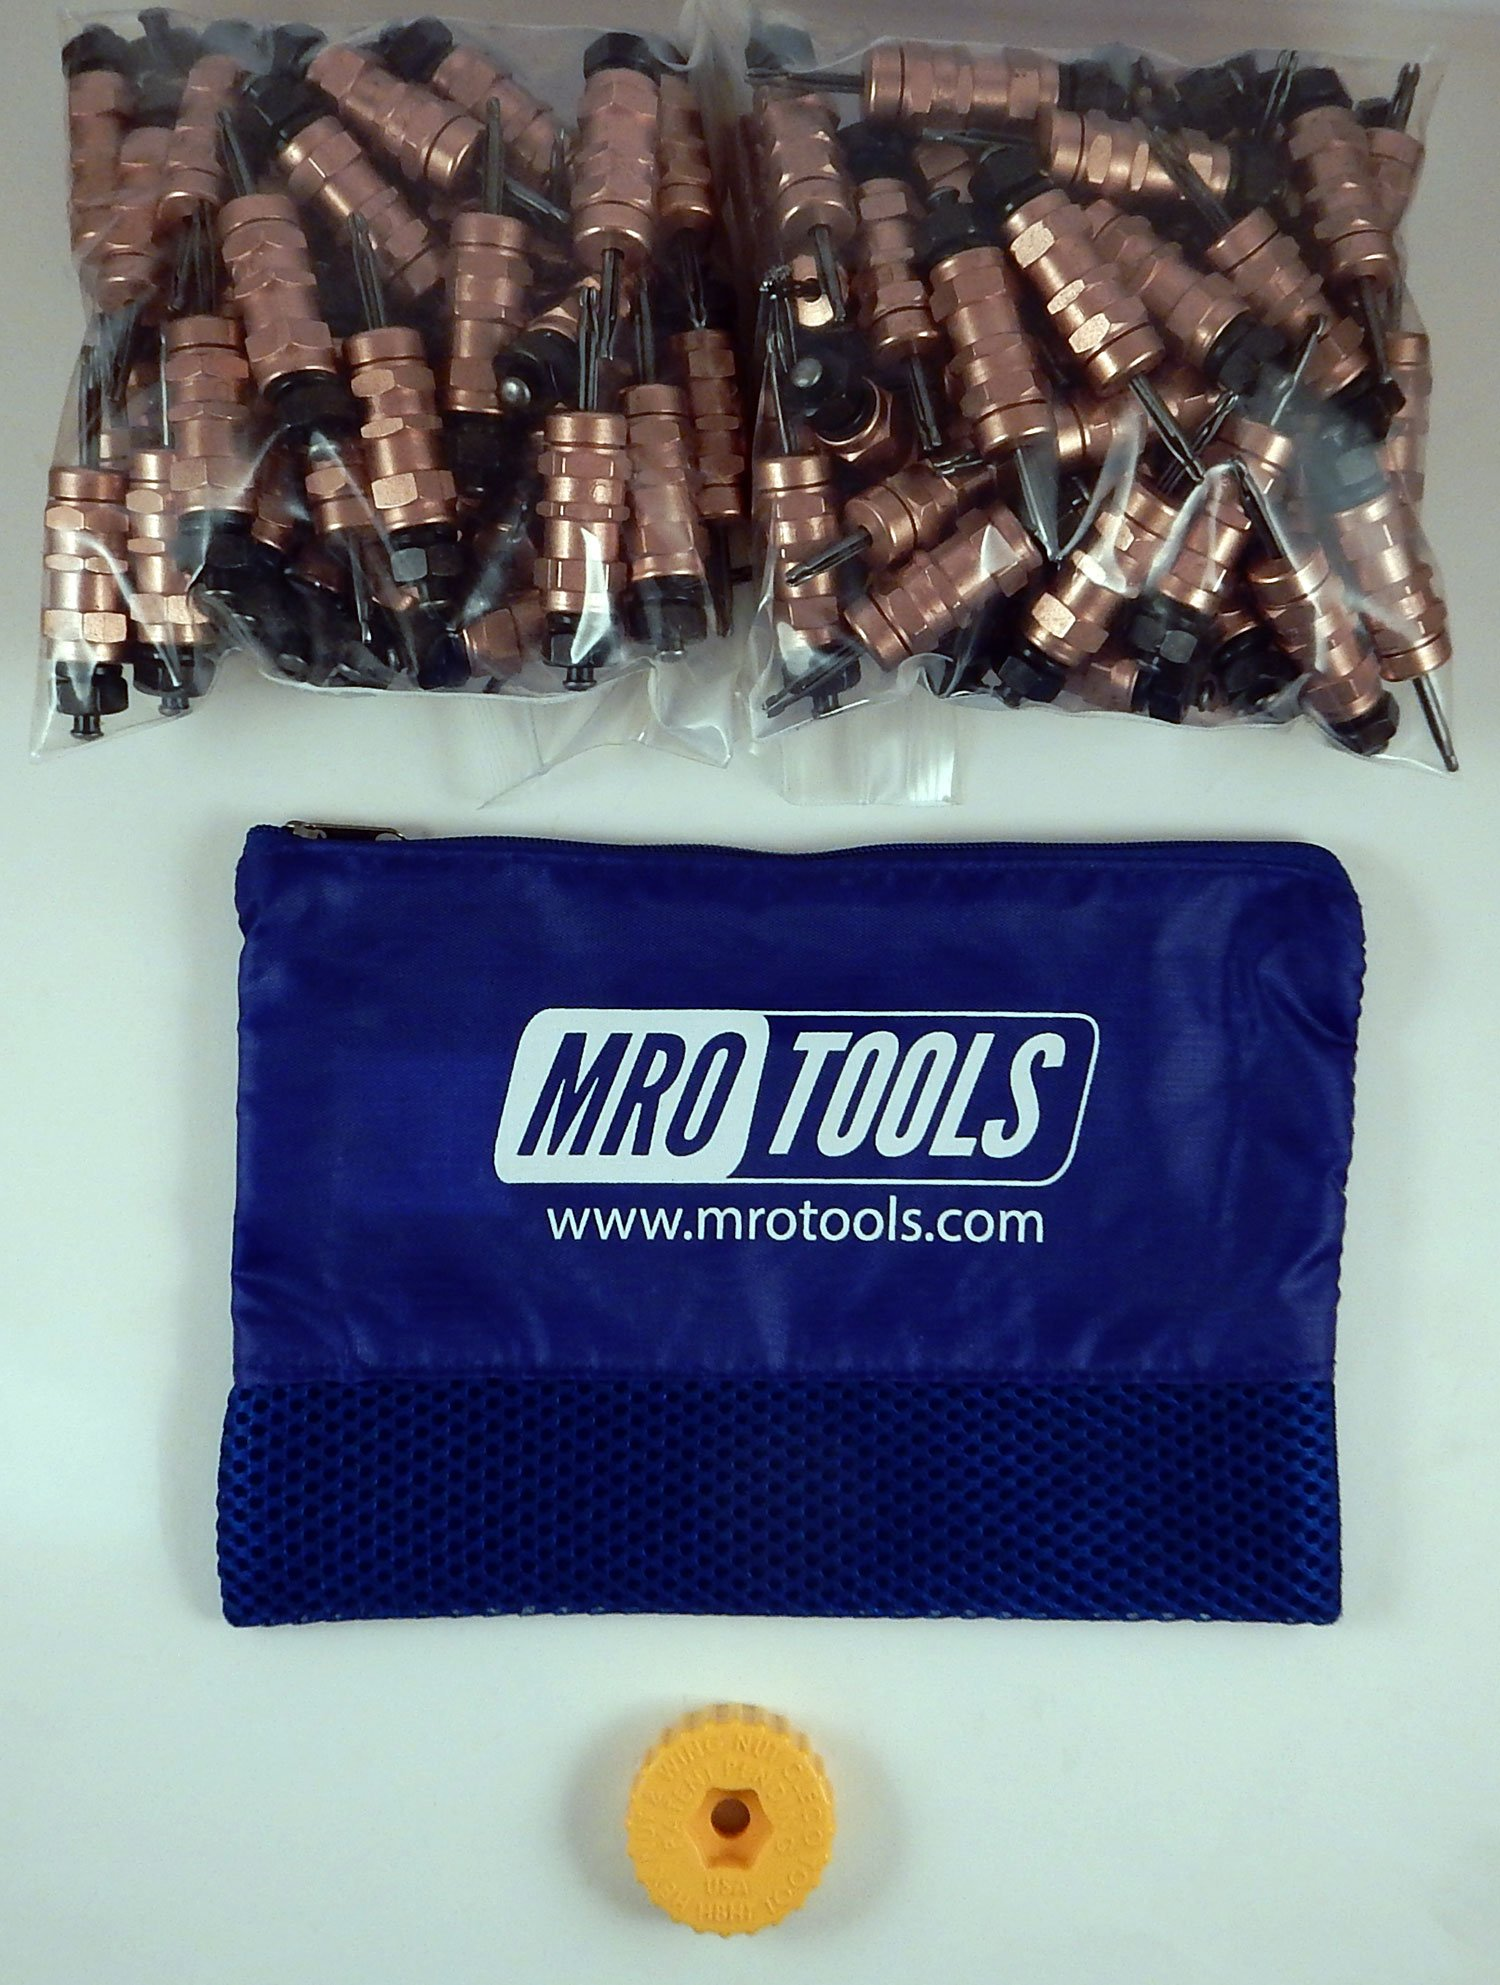 100 1/8 Standard Hex-Nut Cleco Fasteners w/ HBHT Tool & Carry Bag (KHN1S100-1/8) by MRO Tools Cleco Fasteners